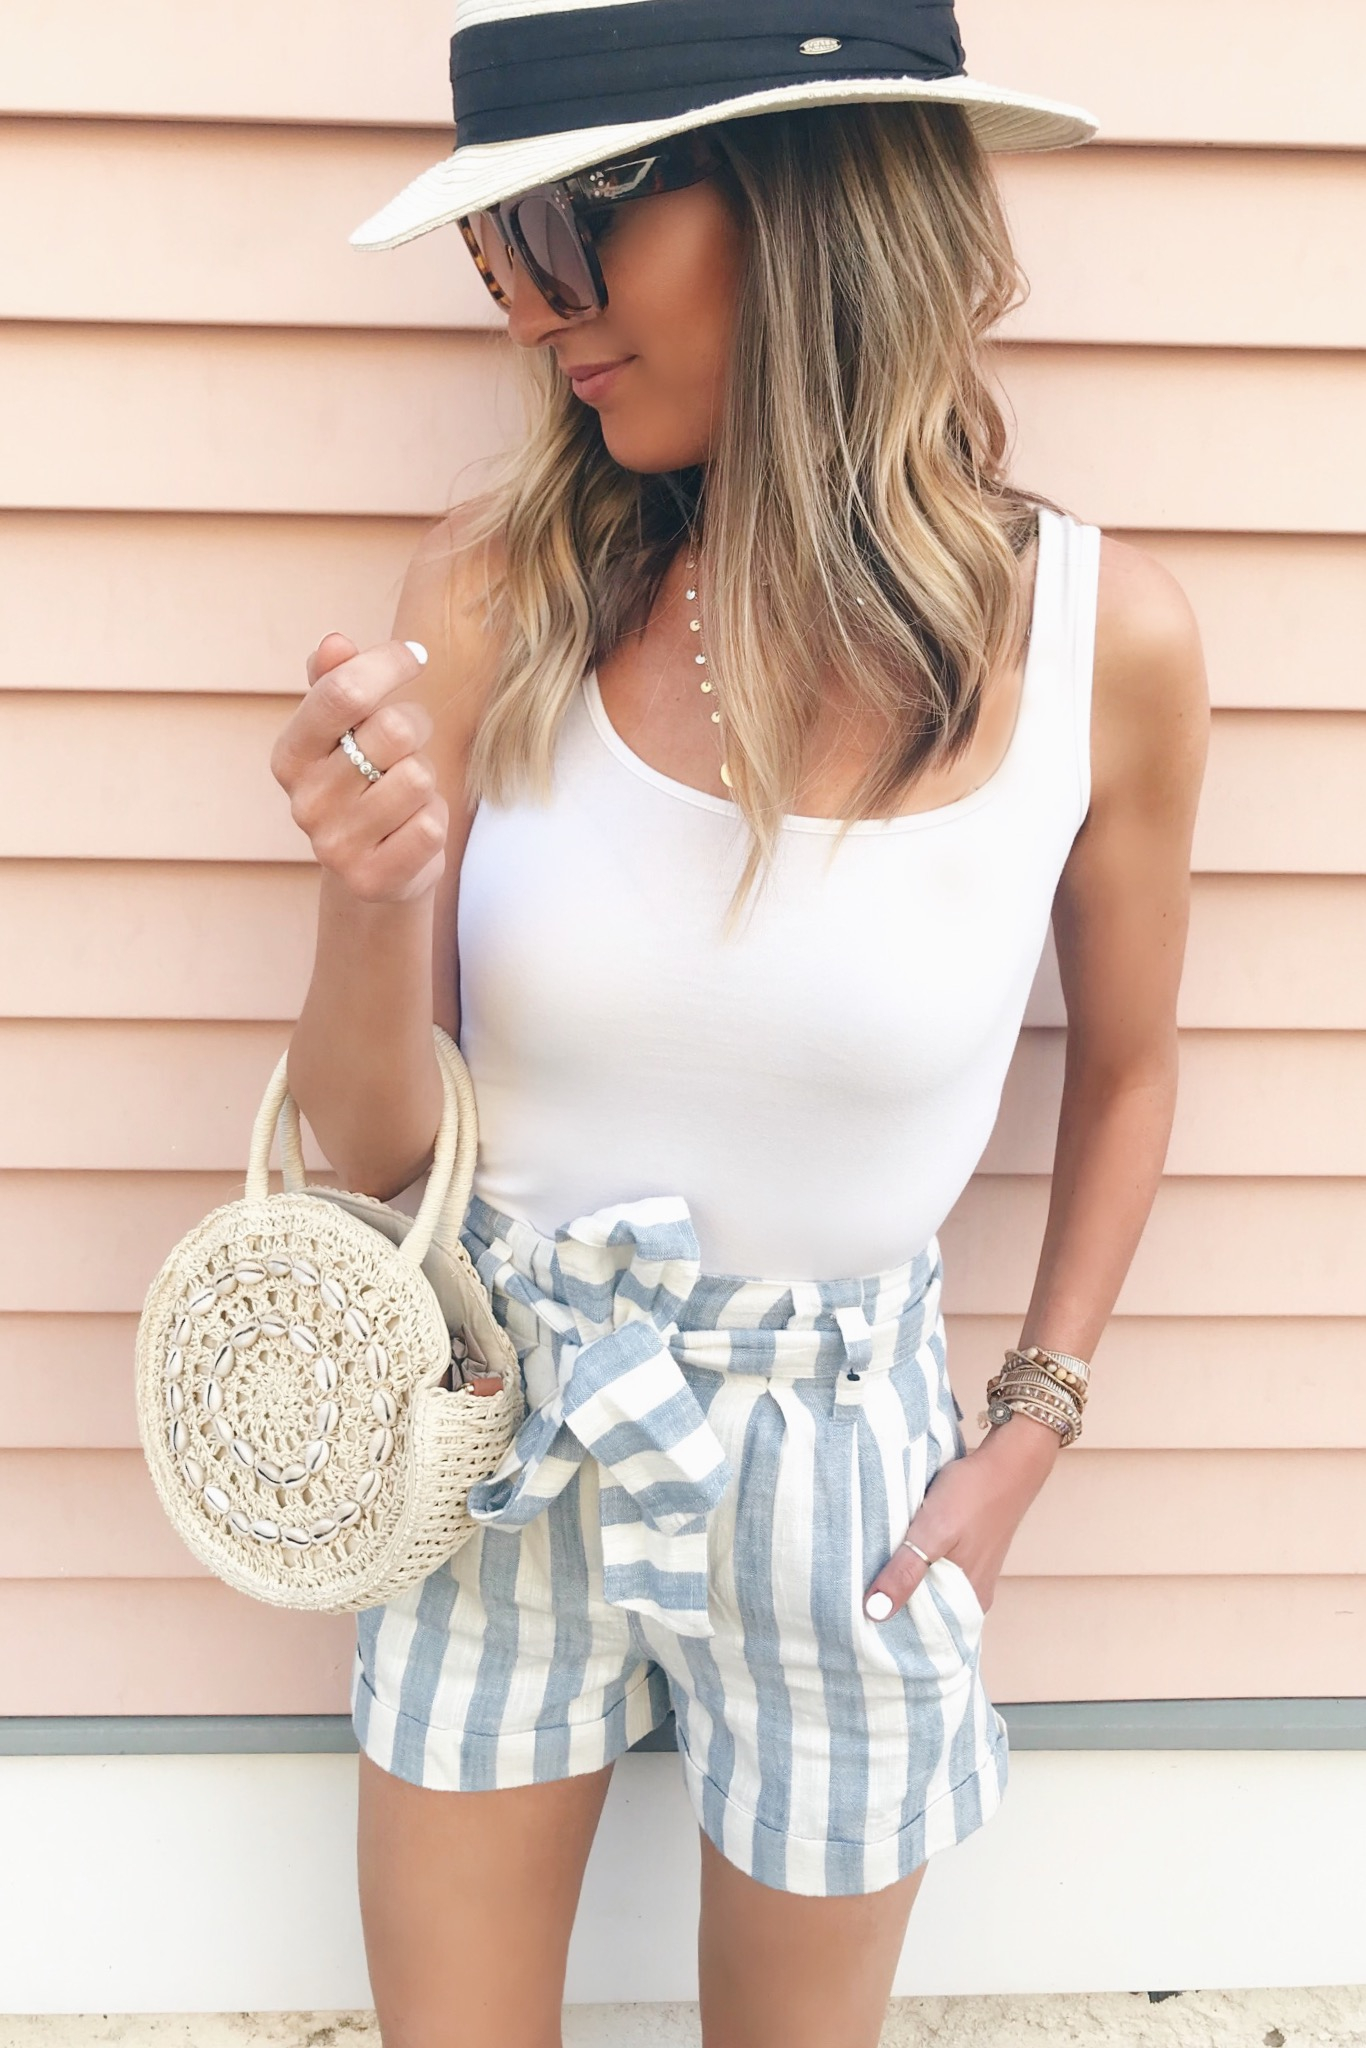 Warm Weather Vacation Outfit Ideas And Favorite Summer Fashion Trend Pinteresting Plans